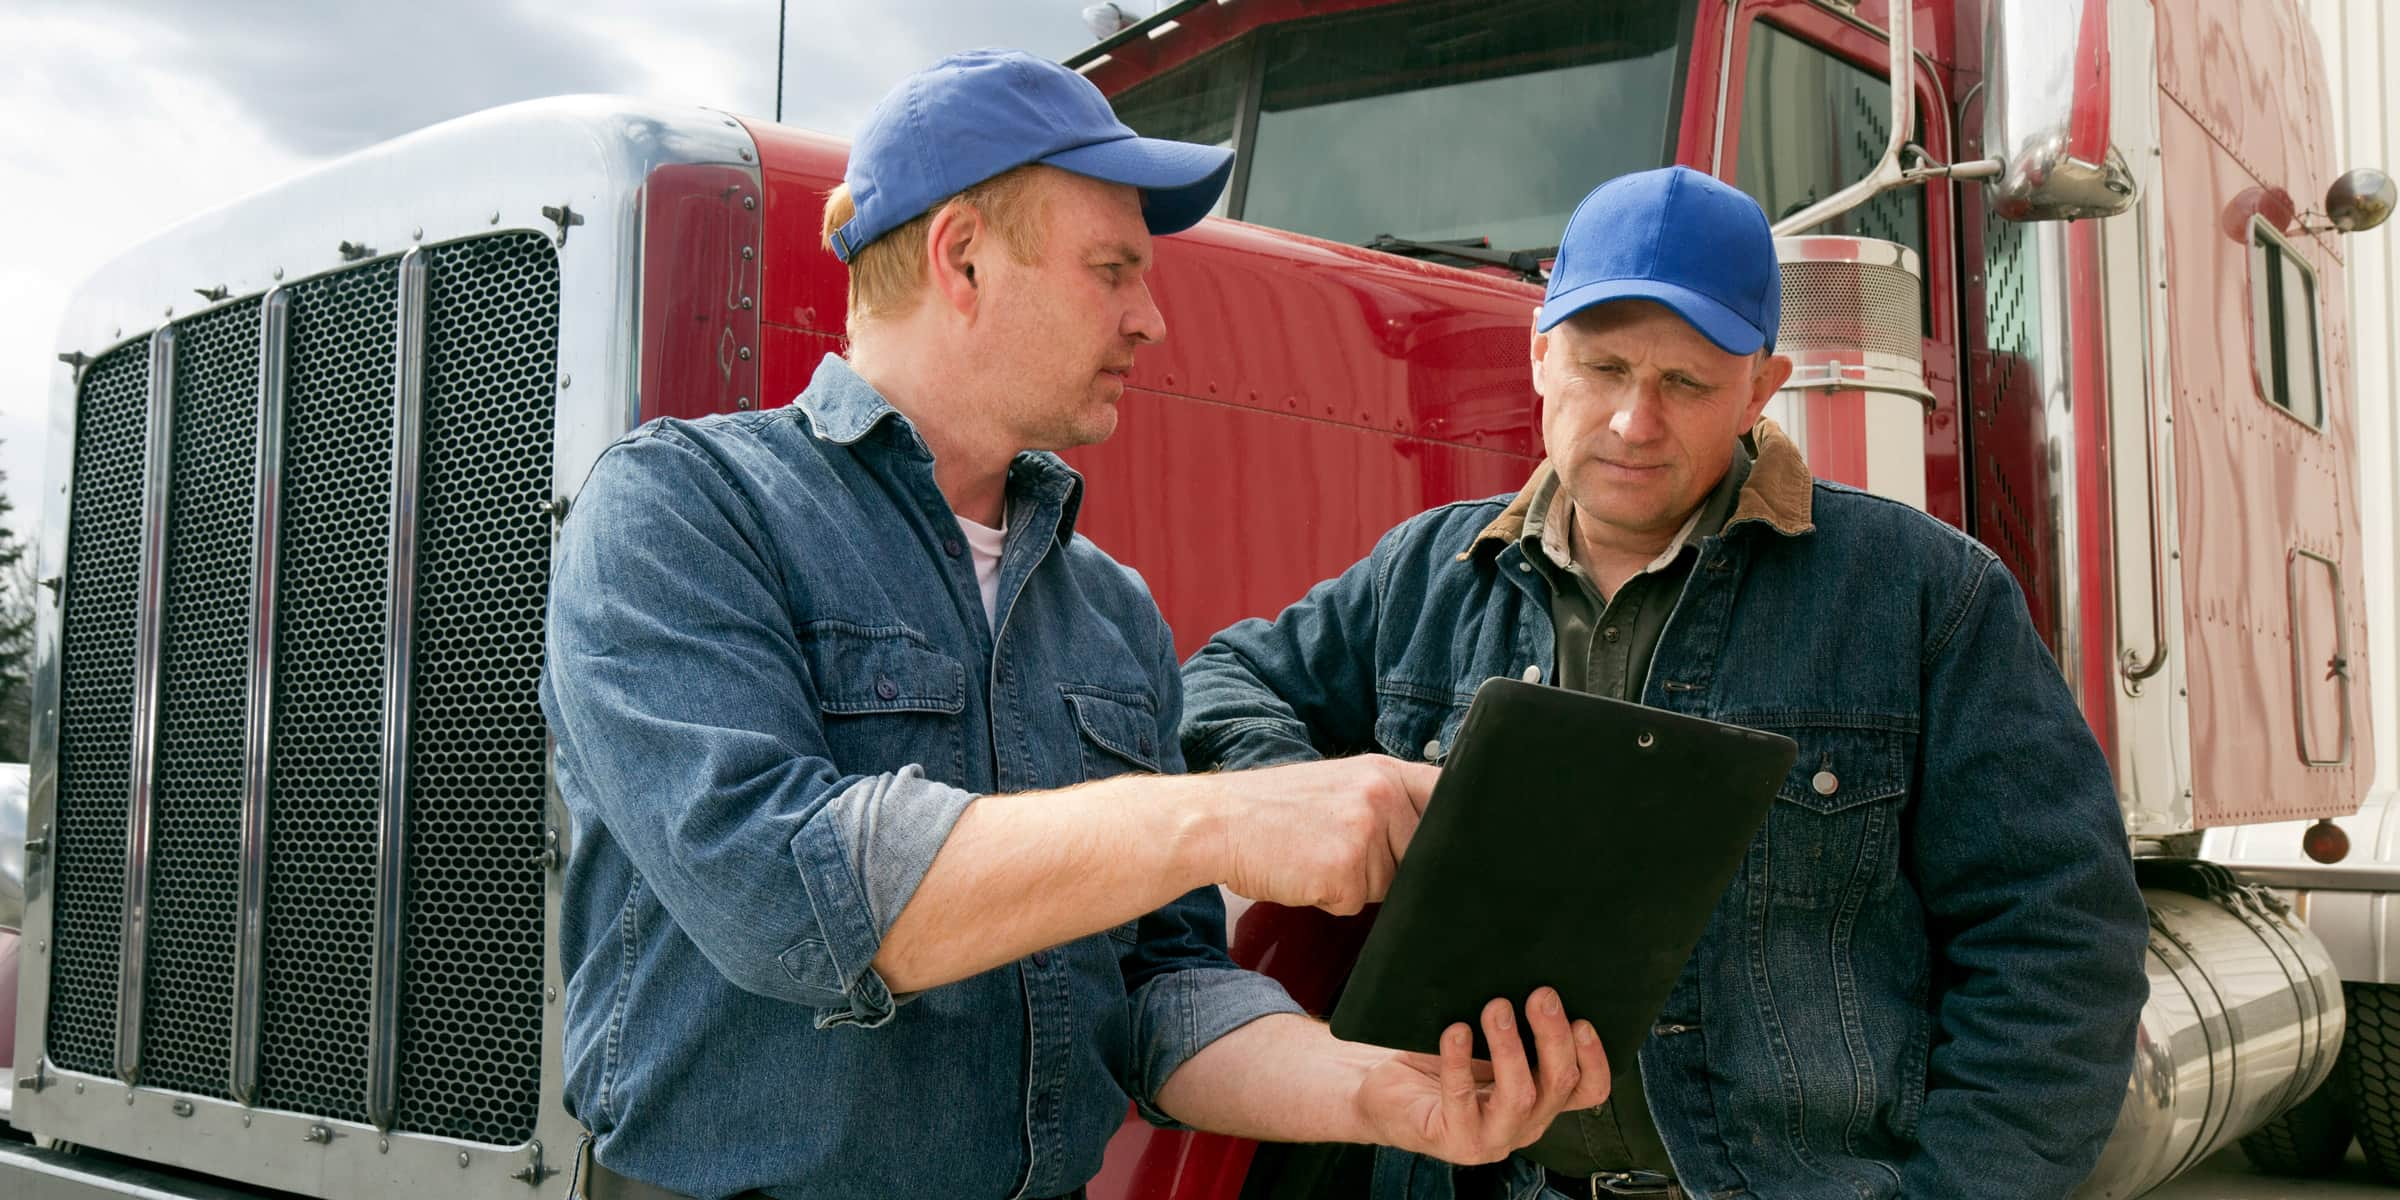 Truck drivers talking with iPad